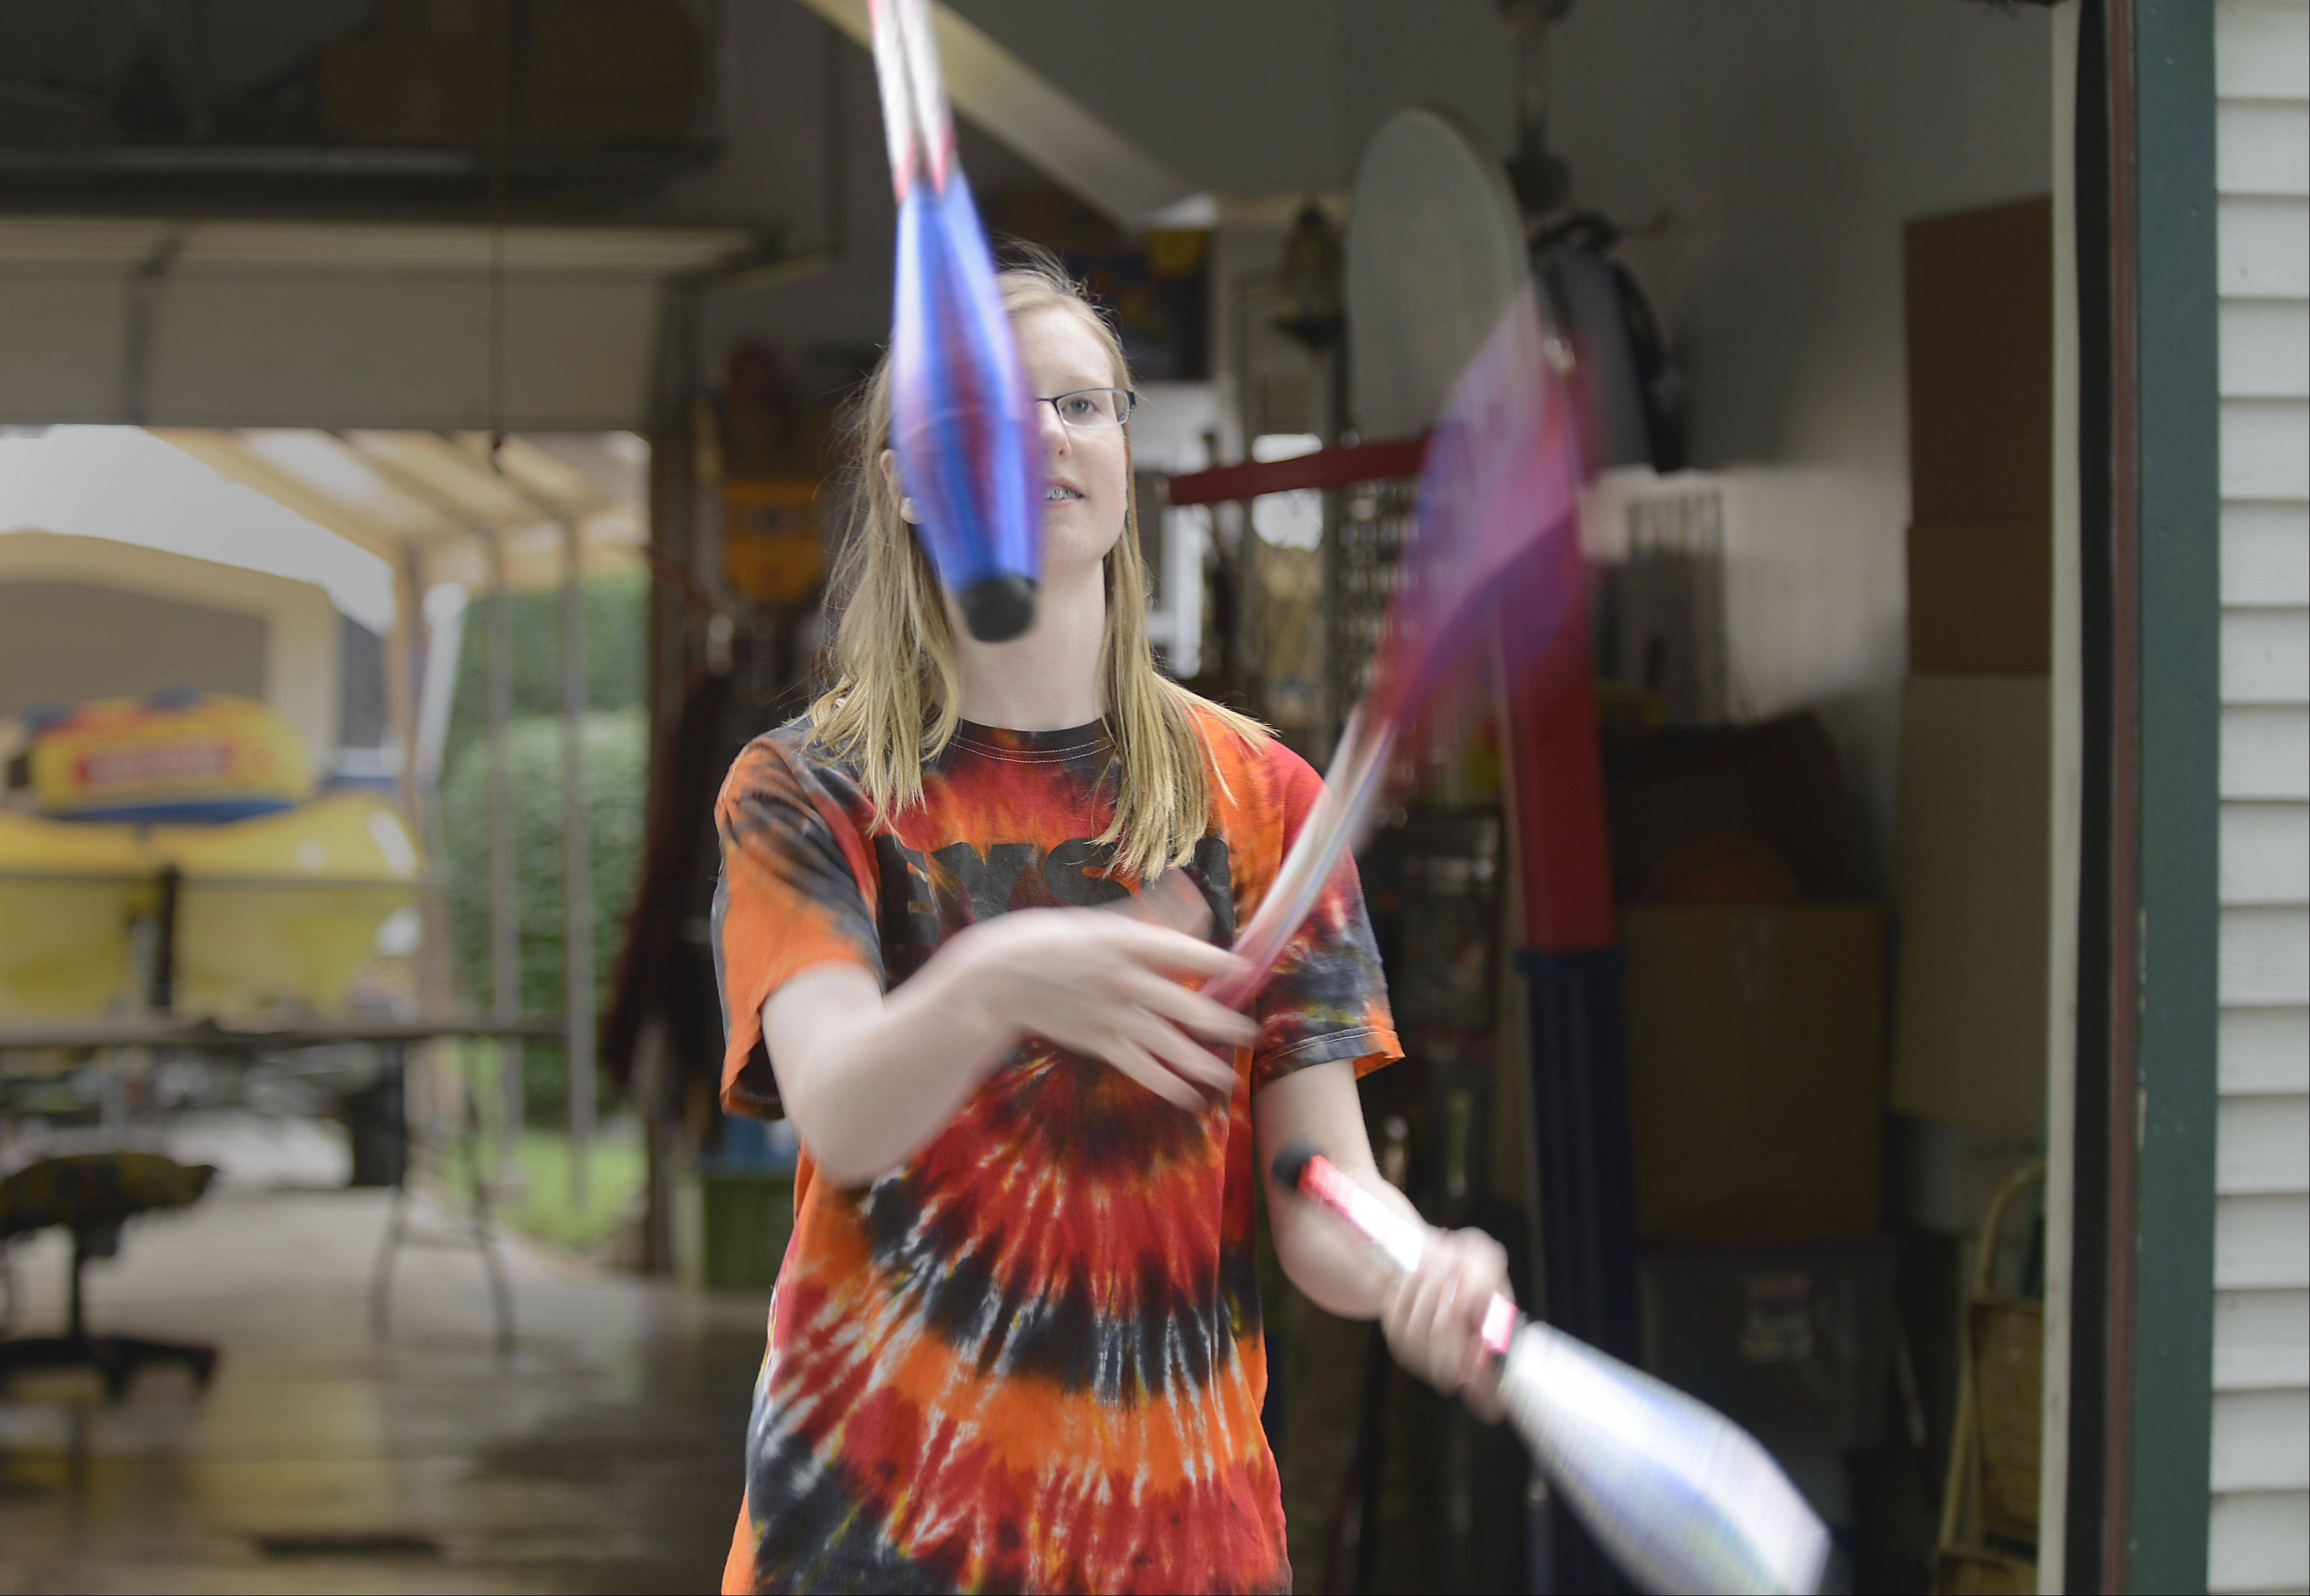 Katie made juggling pins out of pop bottles before getting professional equipment. She can now juggle homemade flaming tiki torches.